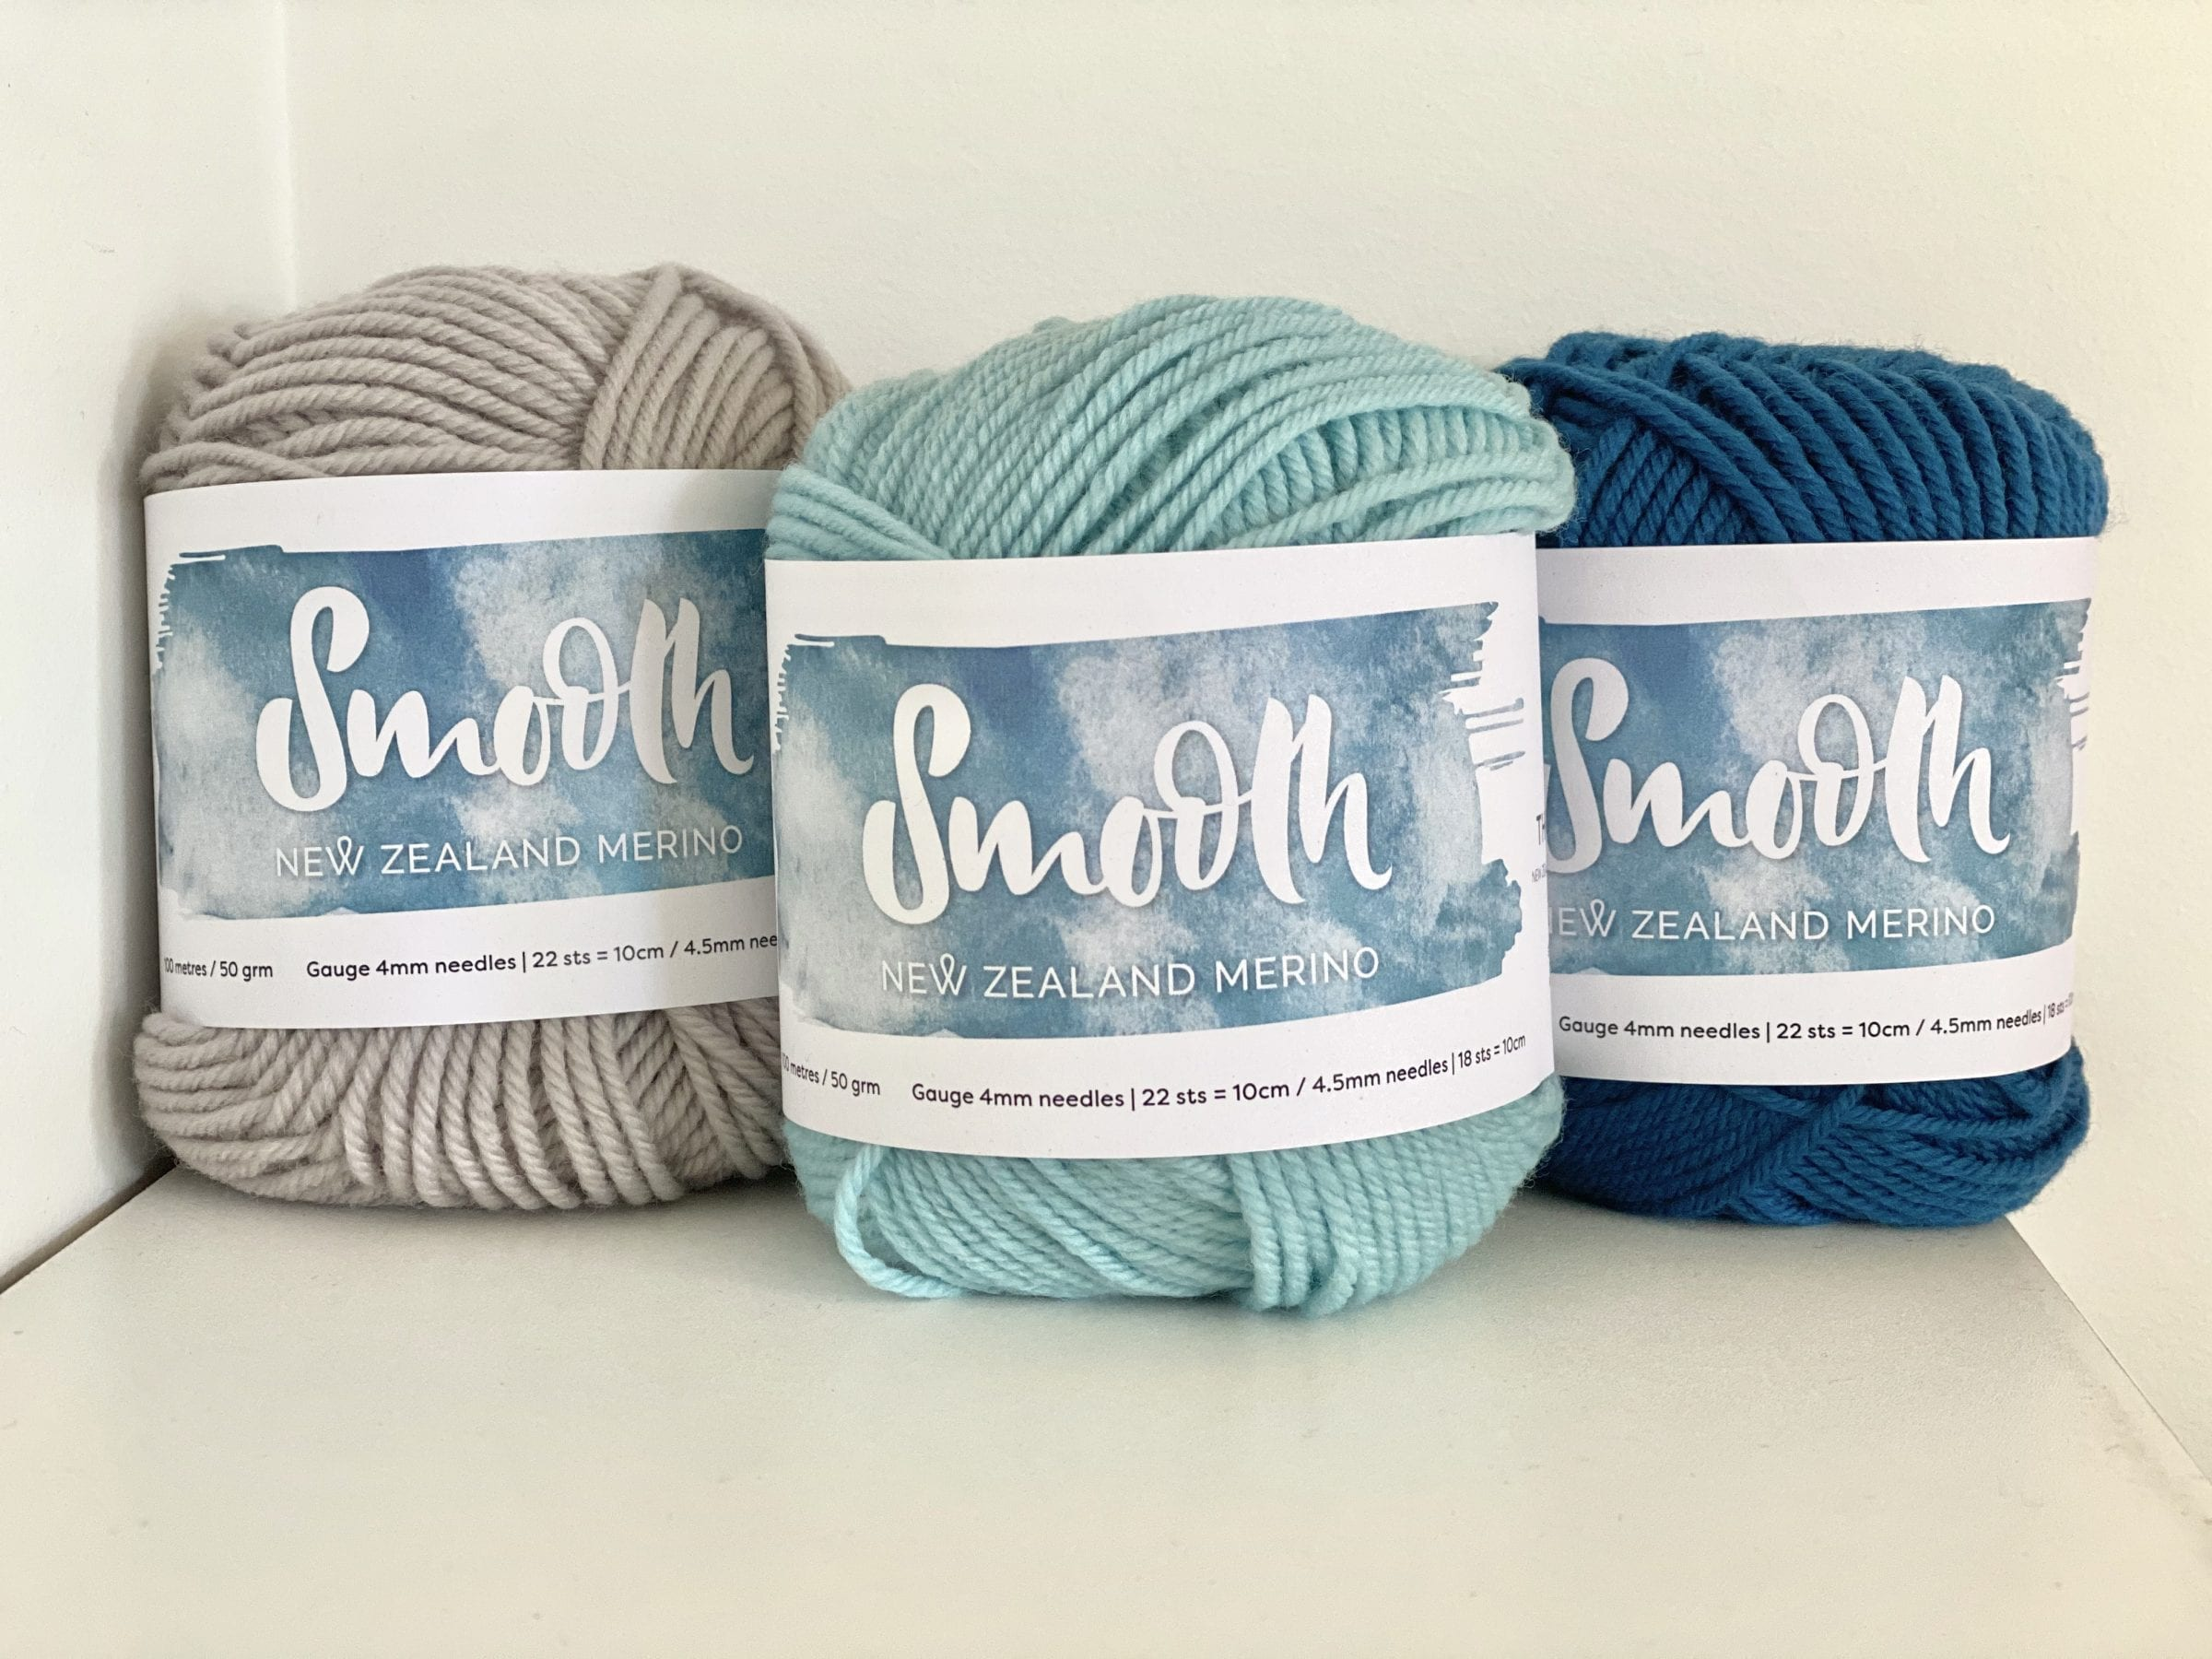 Smooth NZ Merino Knitting Yarn